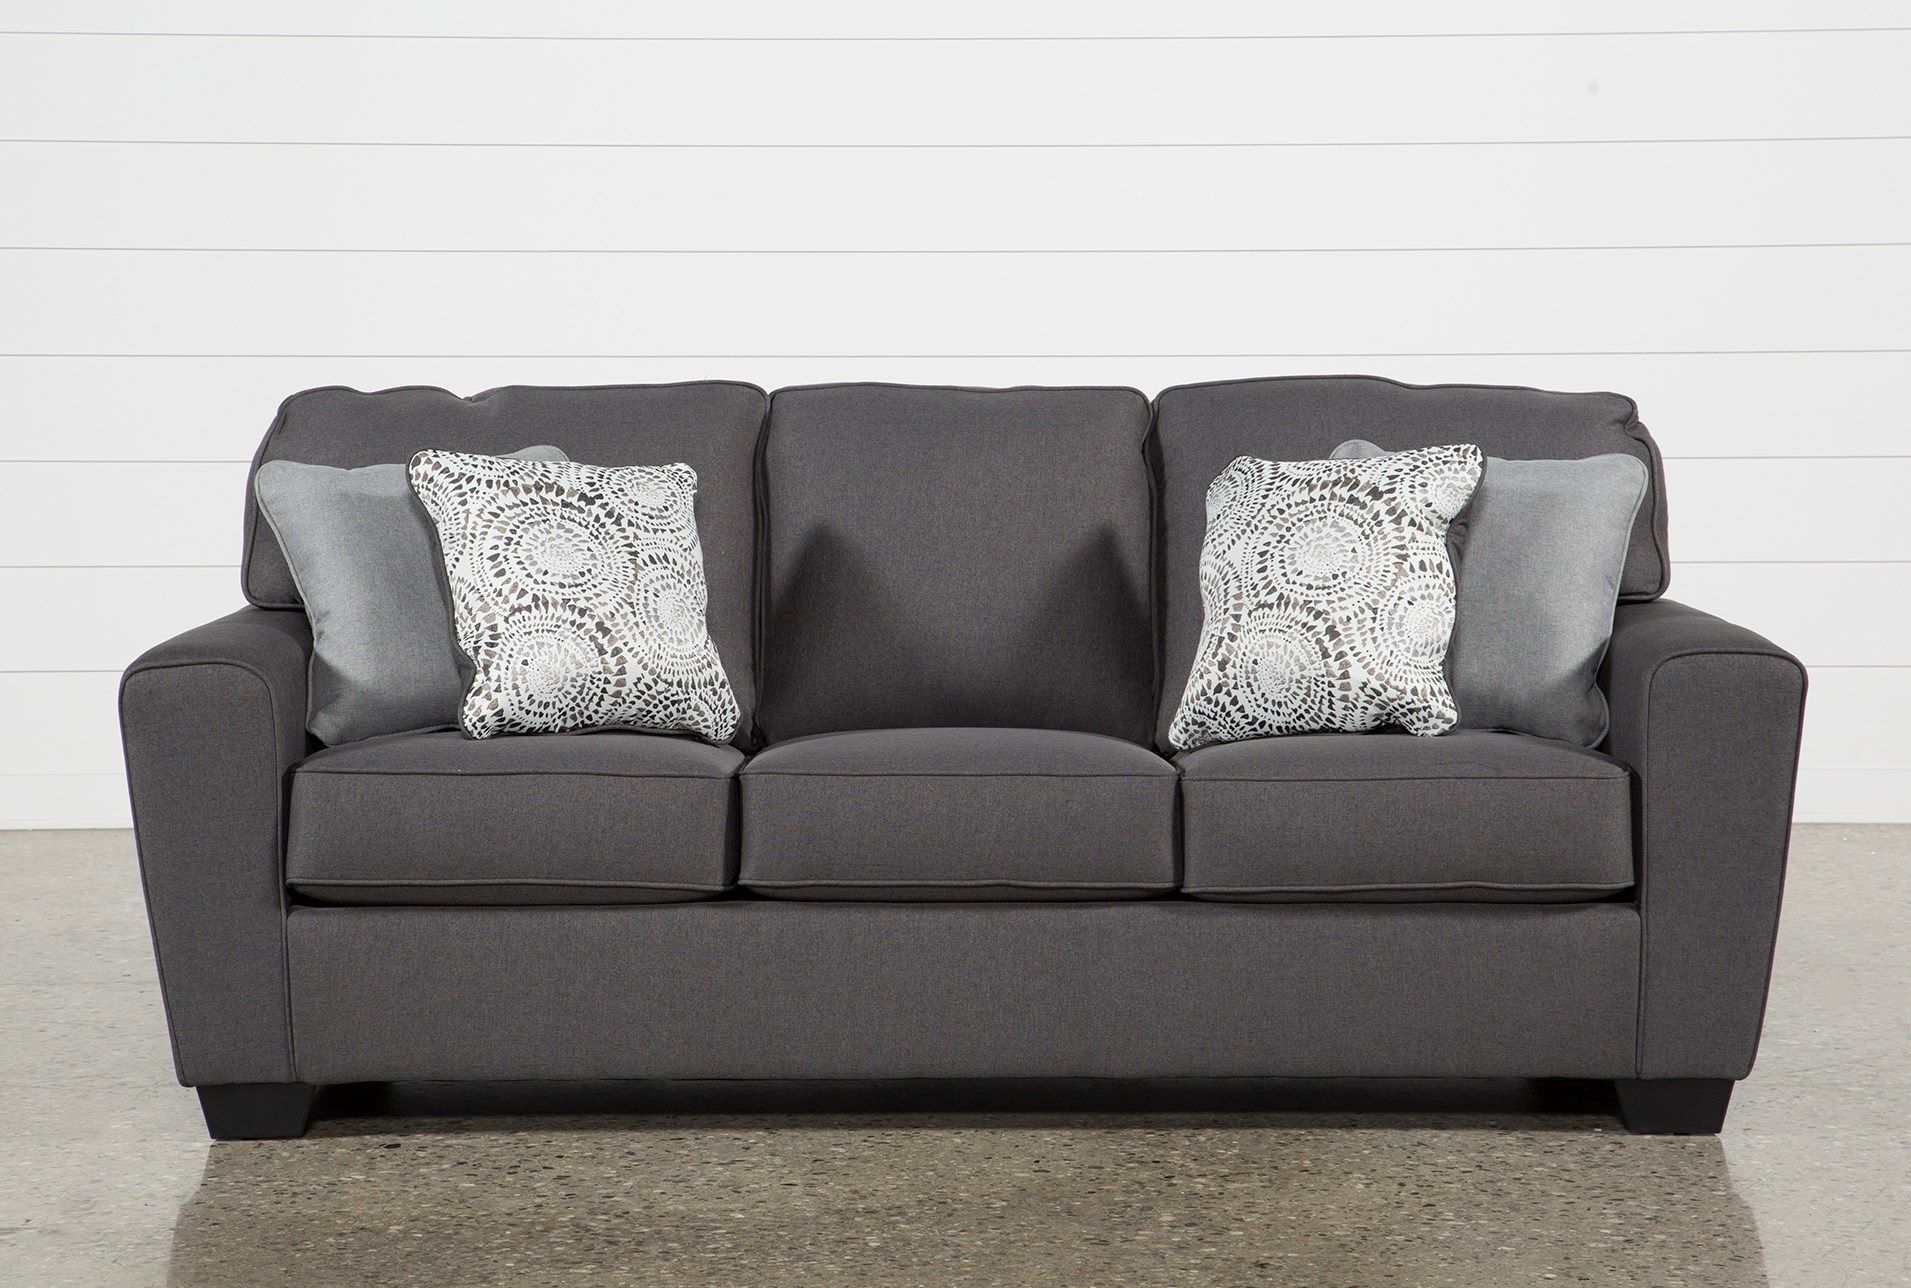 Outstanding Ashley Mcdade Graphite Sofa Grey 295 Sofa Sofa Caraccident5 Cool Chair Designs And Ideas Caraccident5Info